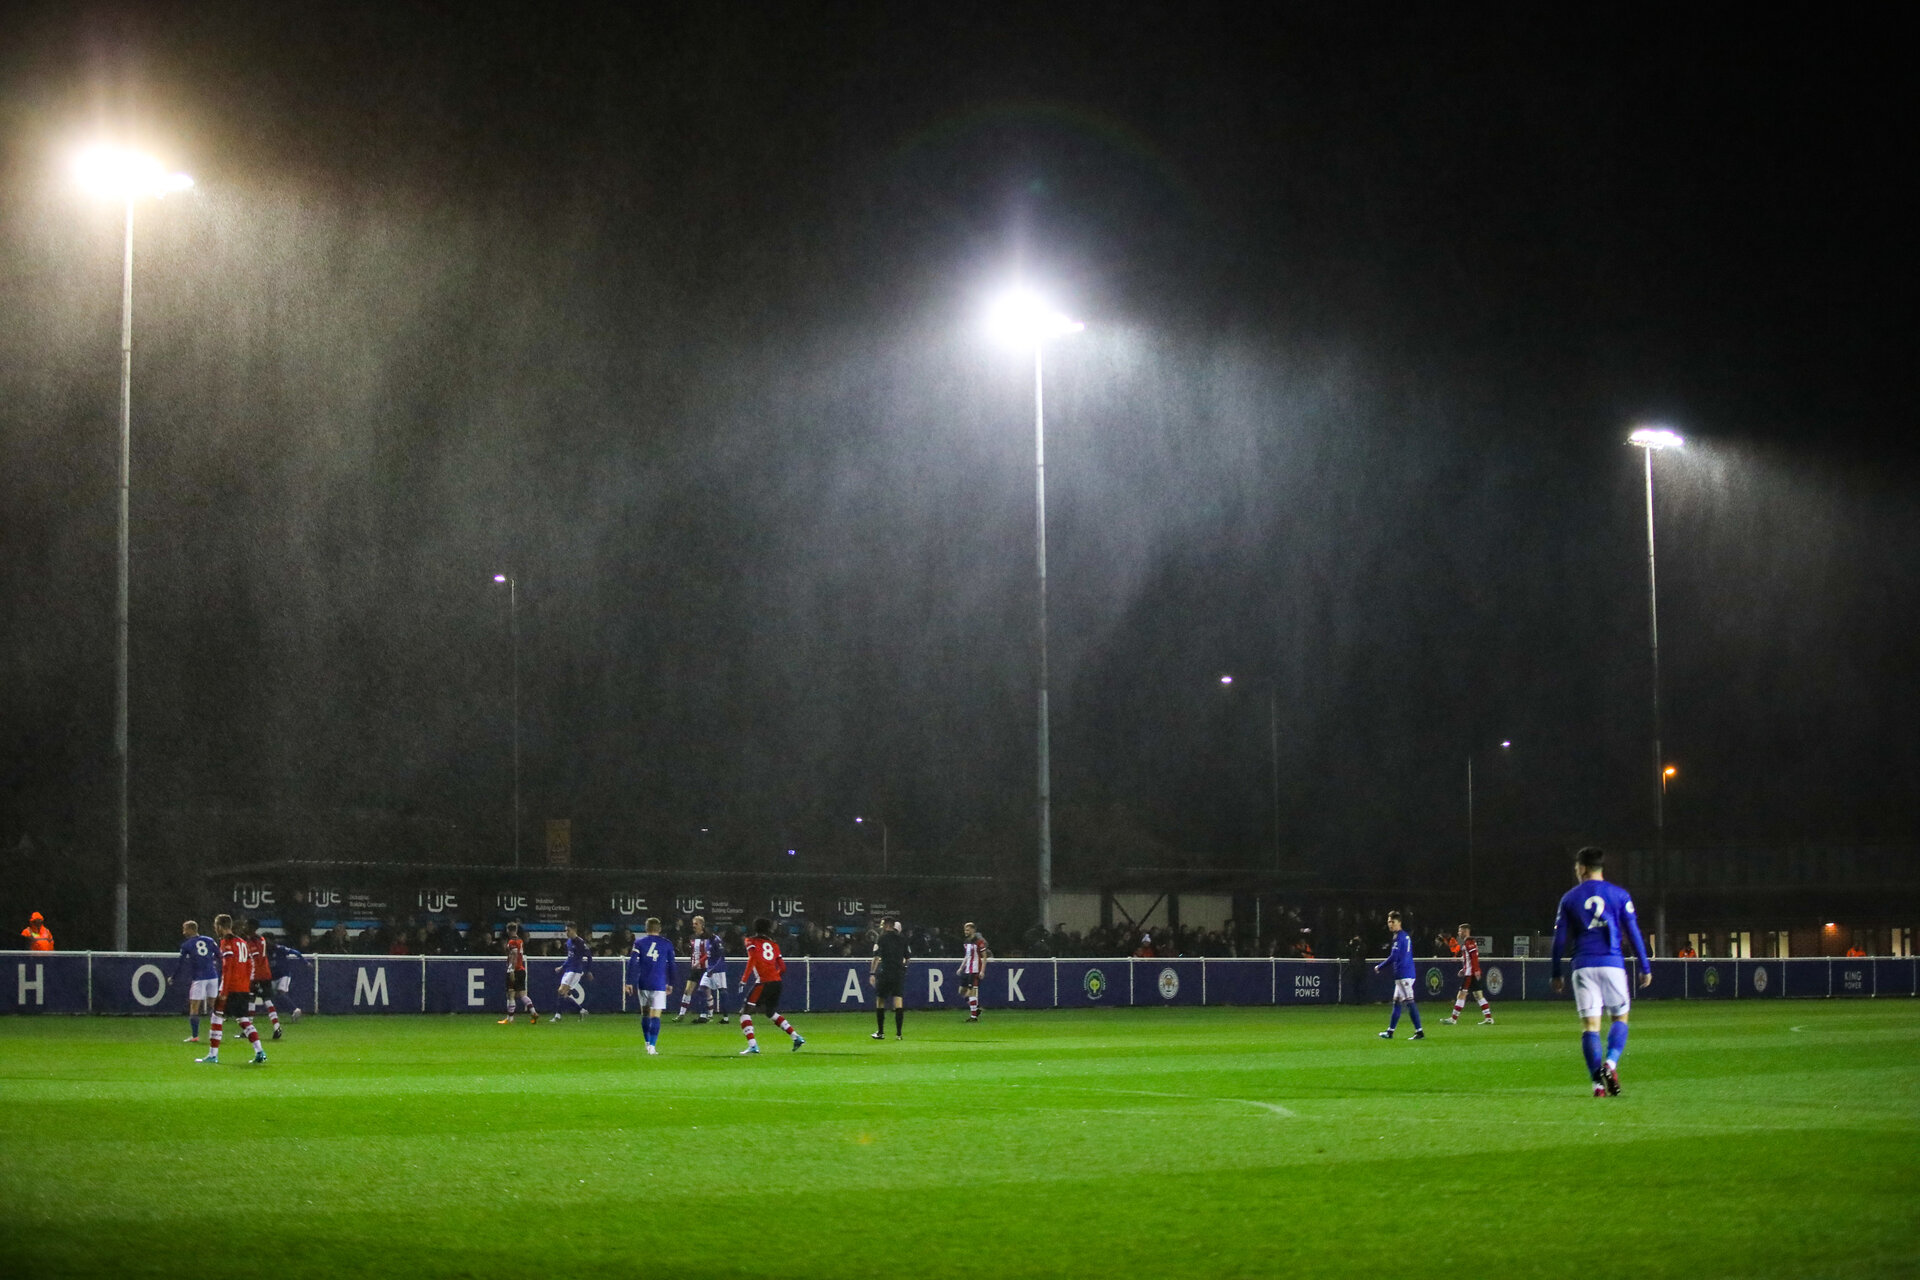 LEICESTER, ENGLAND - OCTOBER 25: General view of Holmes Park prior to the Premier League 2 match between Leicester City and Southampton FC at Holmes Park on October 25, 2019 in Leicester, England during the Premier League 2 match between Leicester City and Southampton FC at Holmes Park on October 25, 2019 in Leicester, England